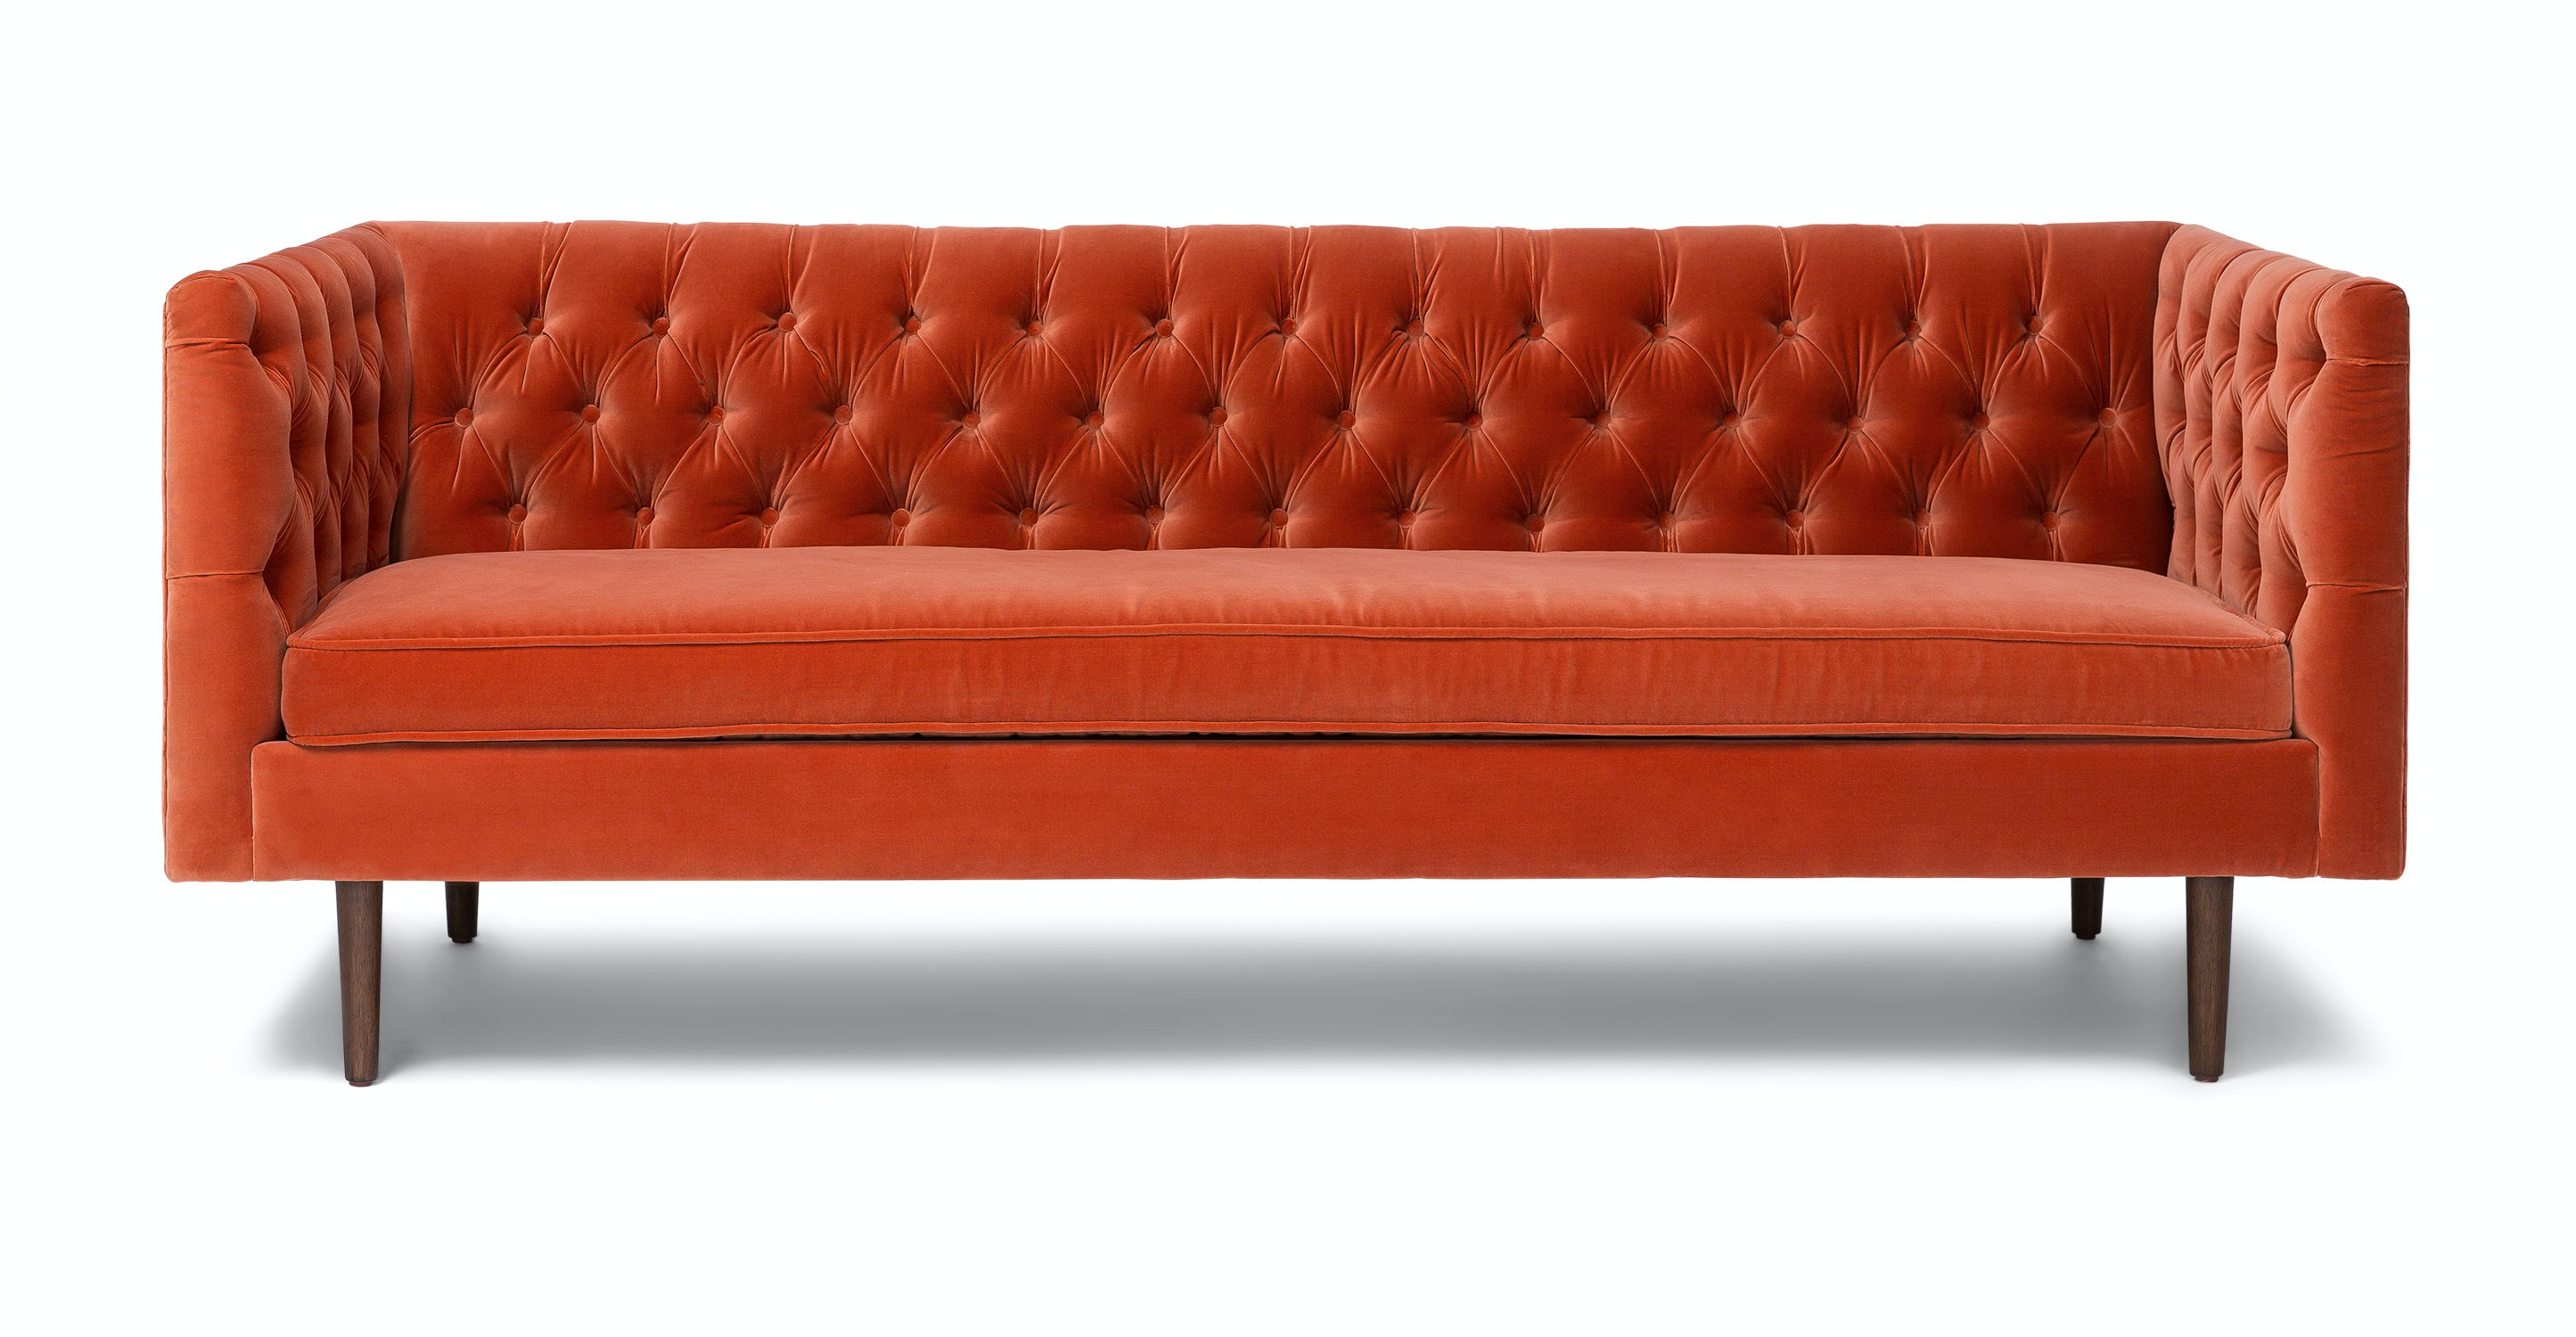 Beau Chester Persimmon Orange Sofa   Sofas   Article | Modern, Mid Century And  Scandinavian Furniture